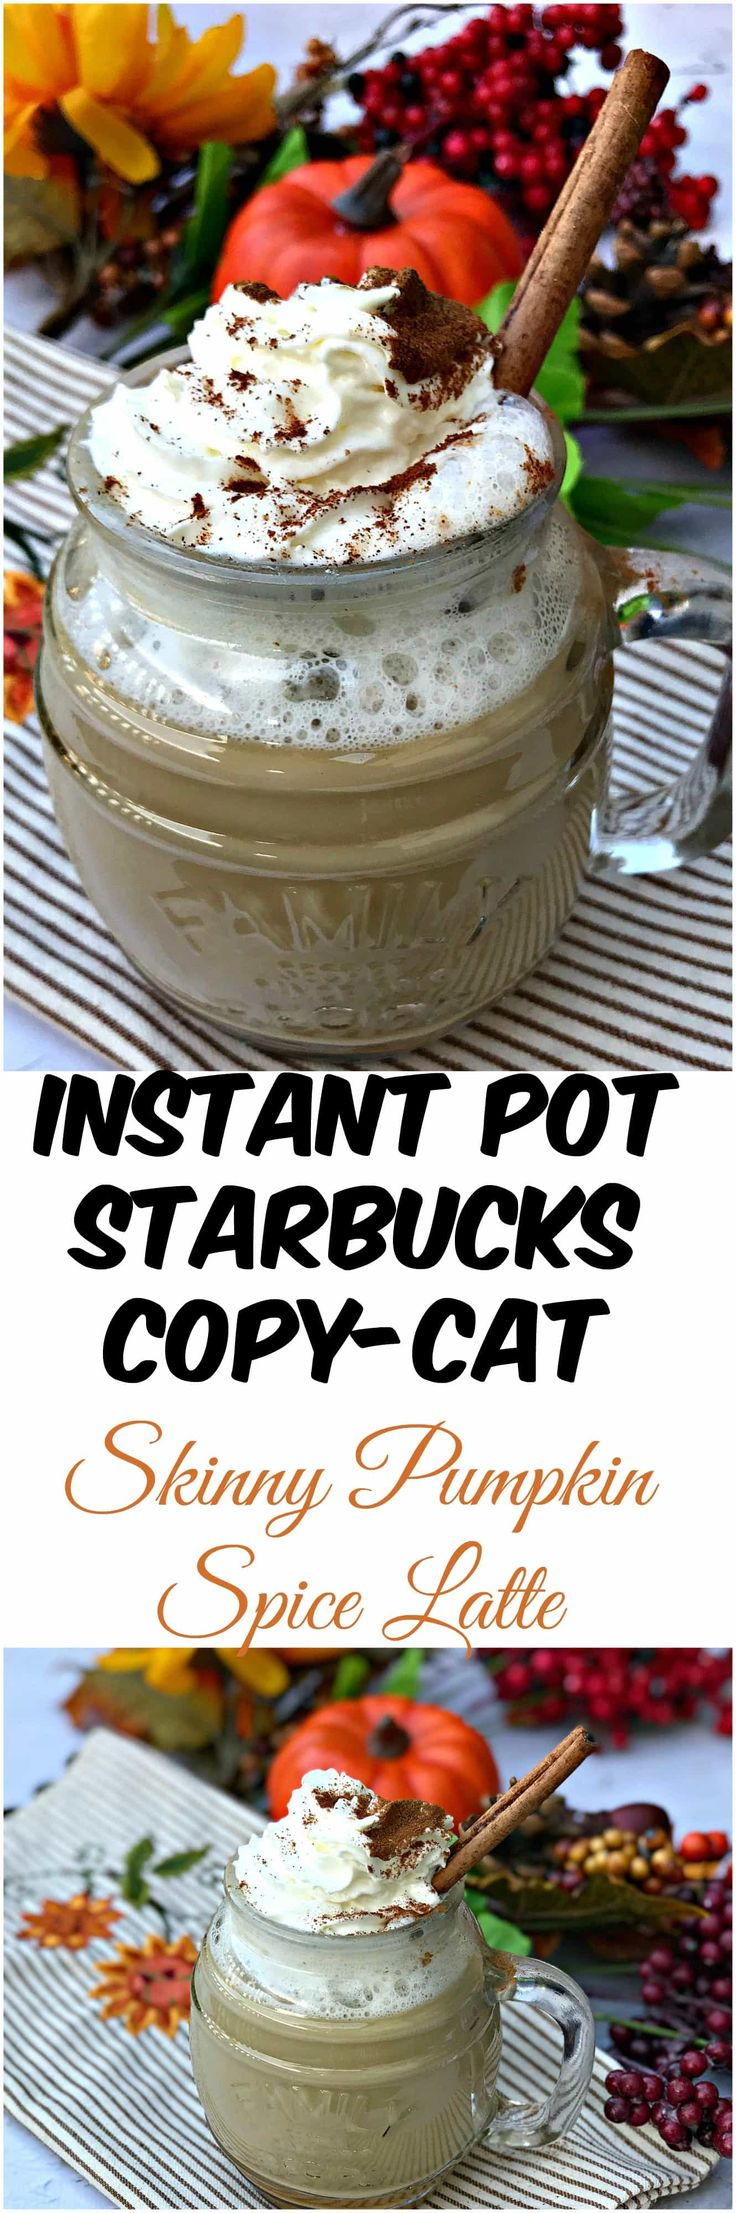 Instant Pot Starbucks Copy Cat Skinny Pumpkin Spice Latte is a quick and easy pressure cooker, low-calorie and a reduced-sugar recipe that mirrors the Starbucks latte.